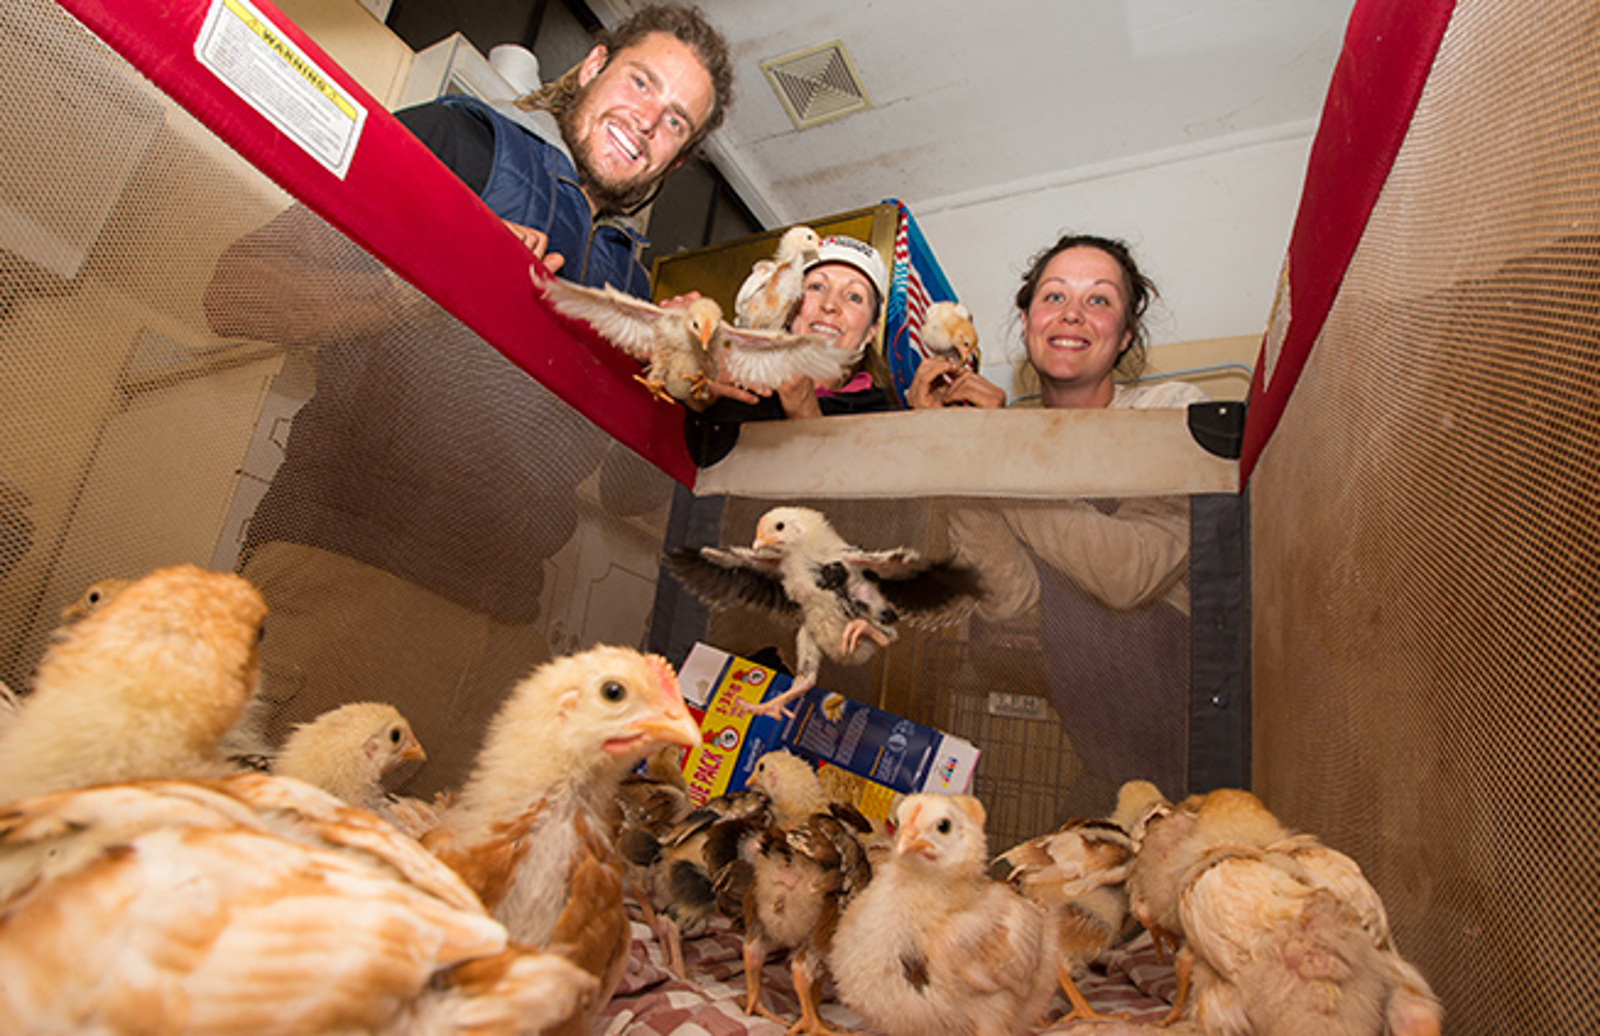 Cute Alert! 26 Chicks Rescued from Box Find New Home at Edgar's Mission